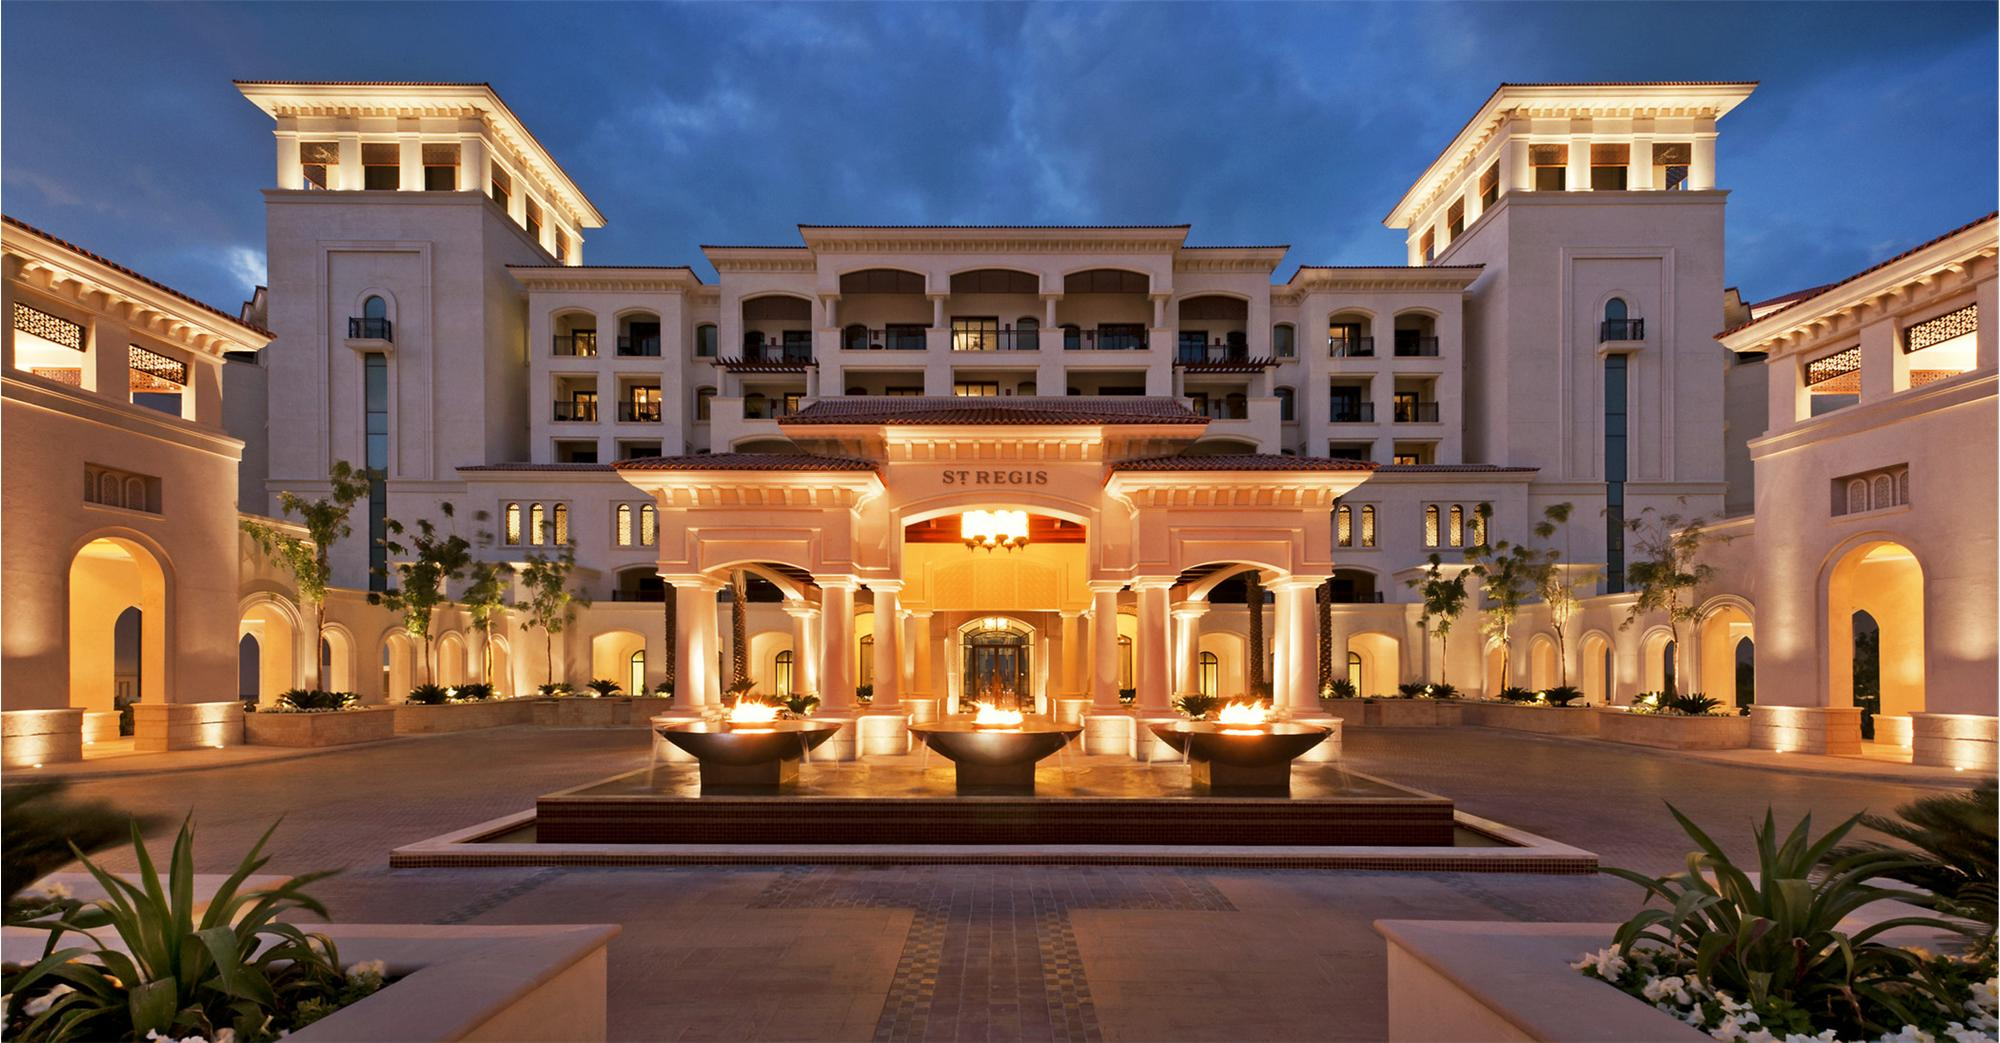 luxury resort, luxury resorts, luxury hotel, luxury hotels, 5 star